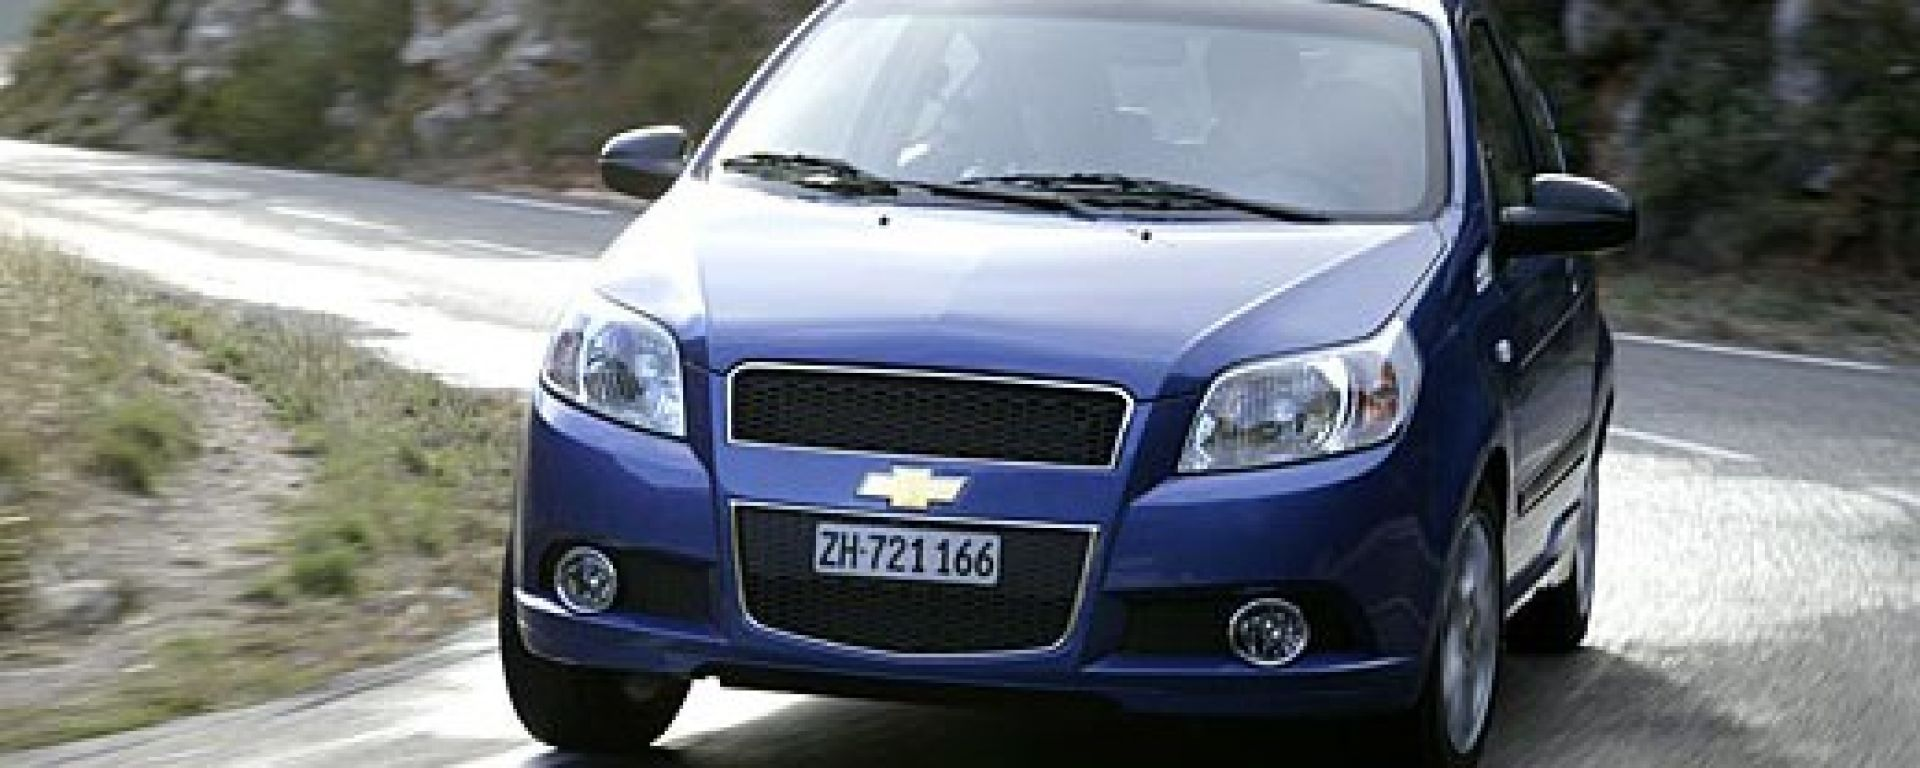 Chevrolet Aveo 1.2 Eco Logic